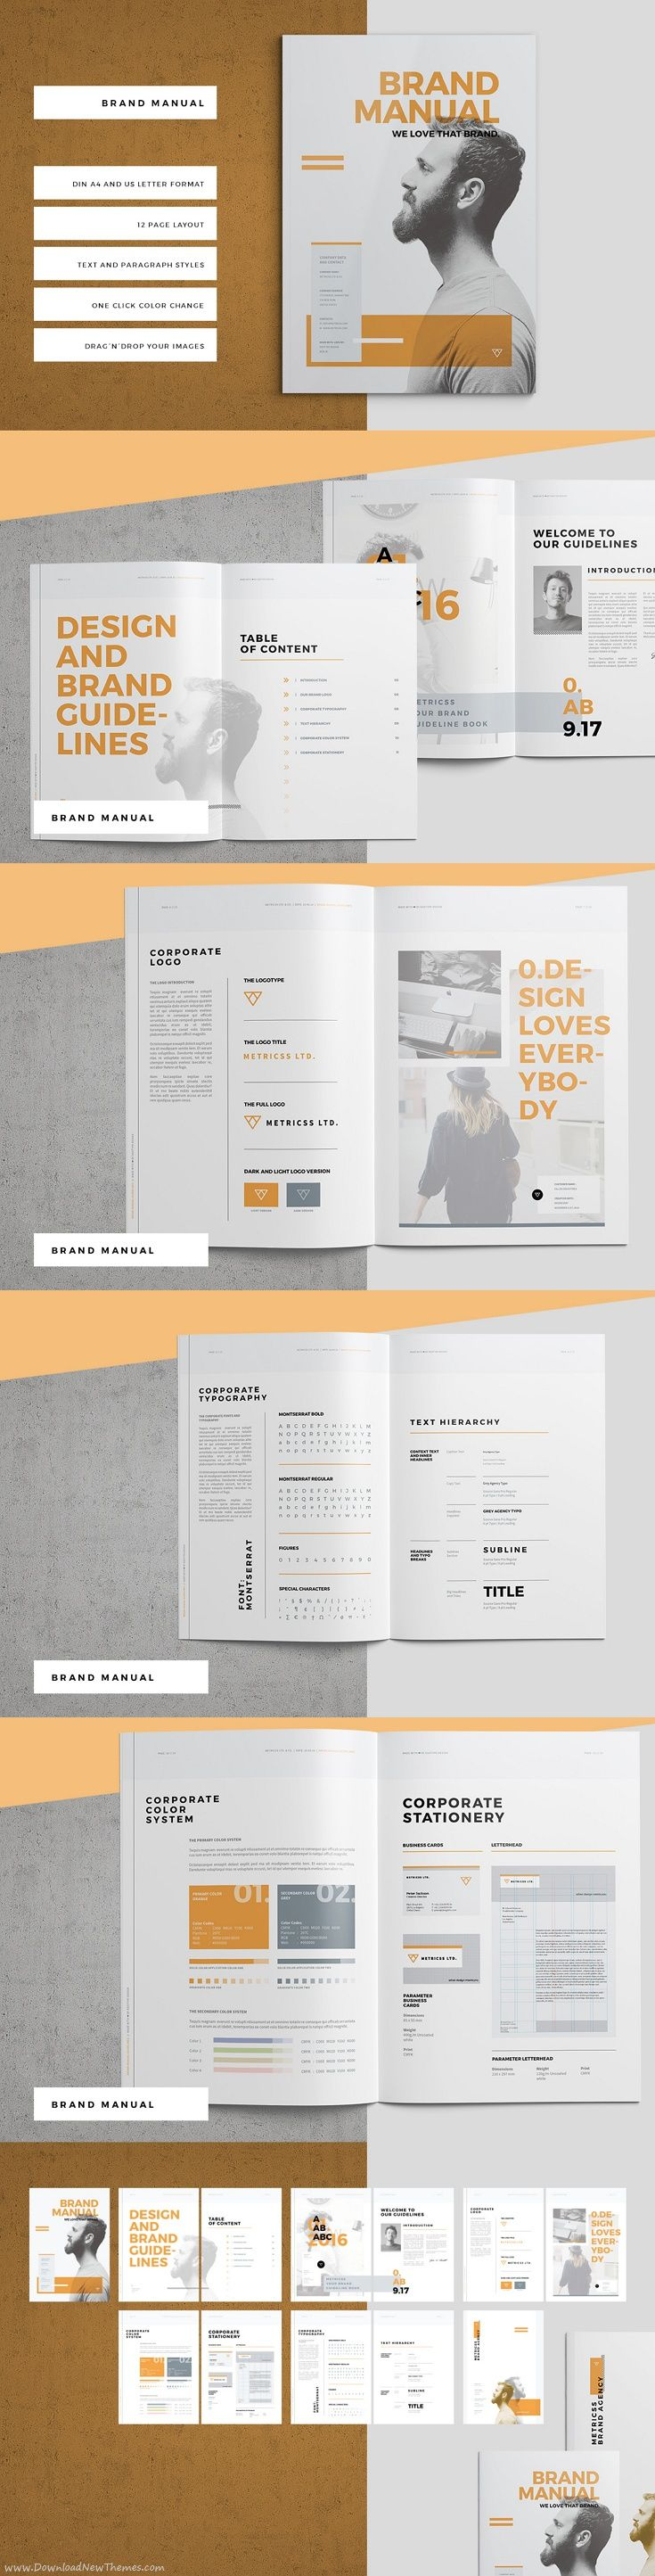 The 25 best ideas about Brand Guidelines Template – Manual Design Templates